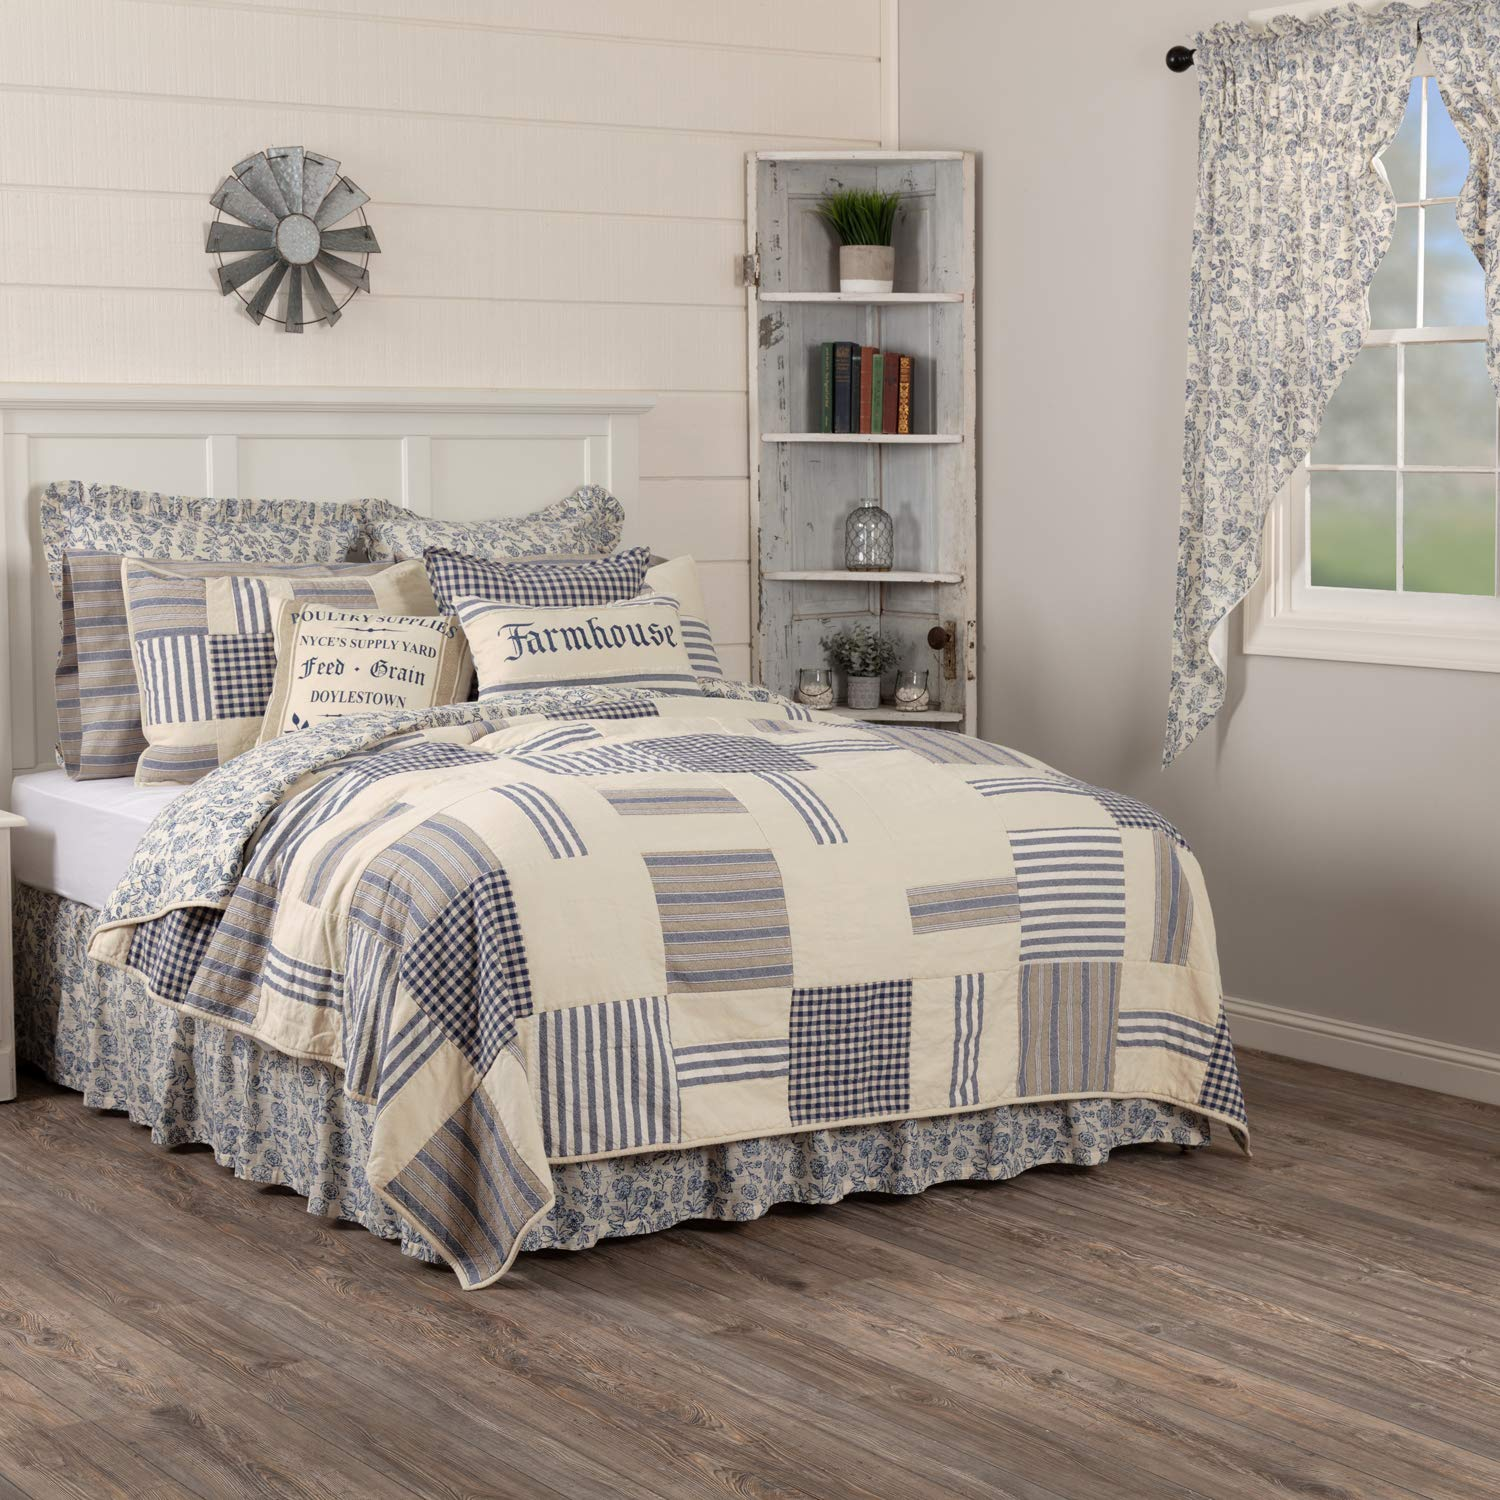 Piper Classics Doylestown Blue Queen Patchwork Quilt, Gingham Checks, Grain Sack & Ticking Stripes, Reversible to Floral Print, Blue & Cream Vintage Farmhouse Bedding, Rustic Country, Cottage Bedroom by Piper Classics (Image #2)